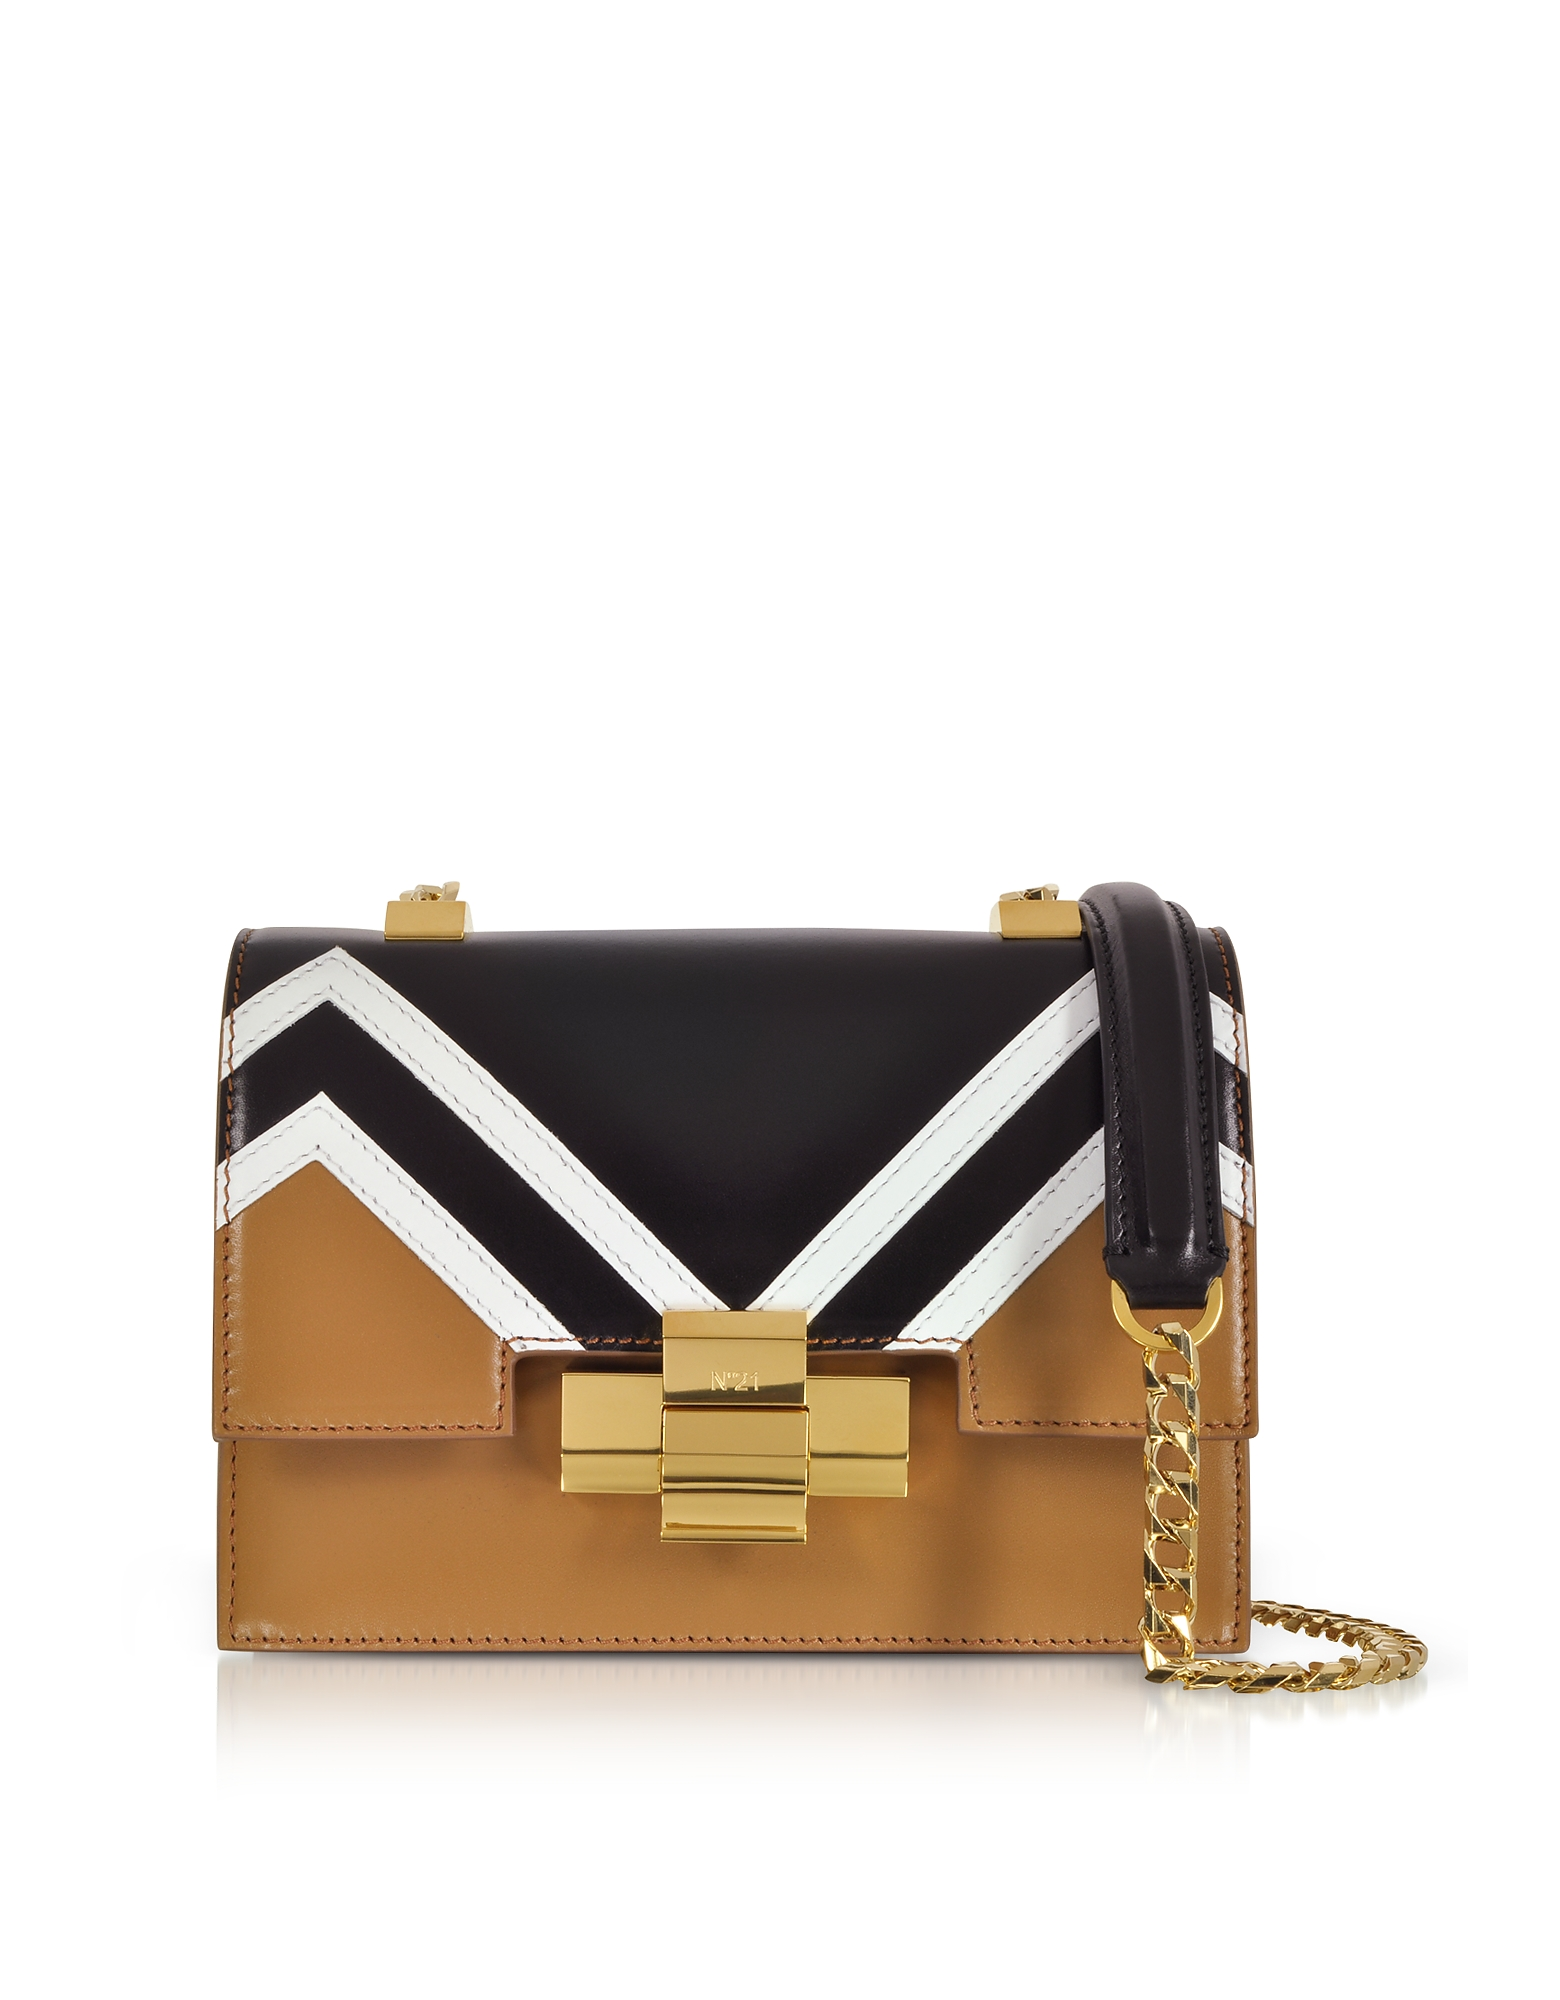 Mini Alice Borsa con Tracolla in Nappa Cammello e Nero